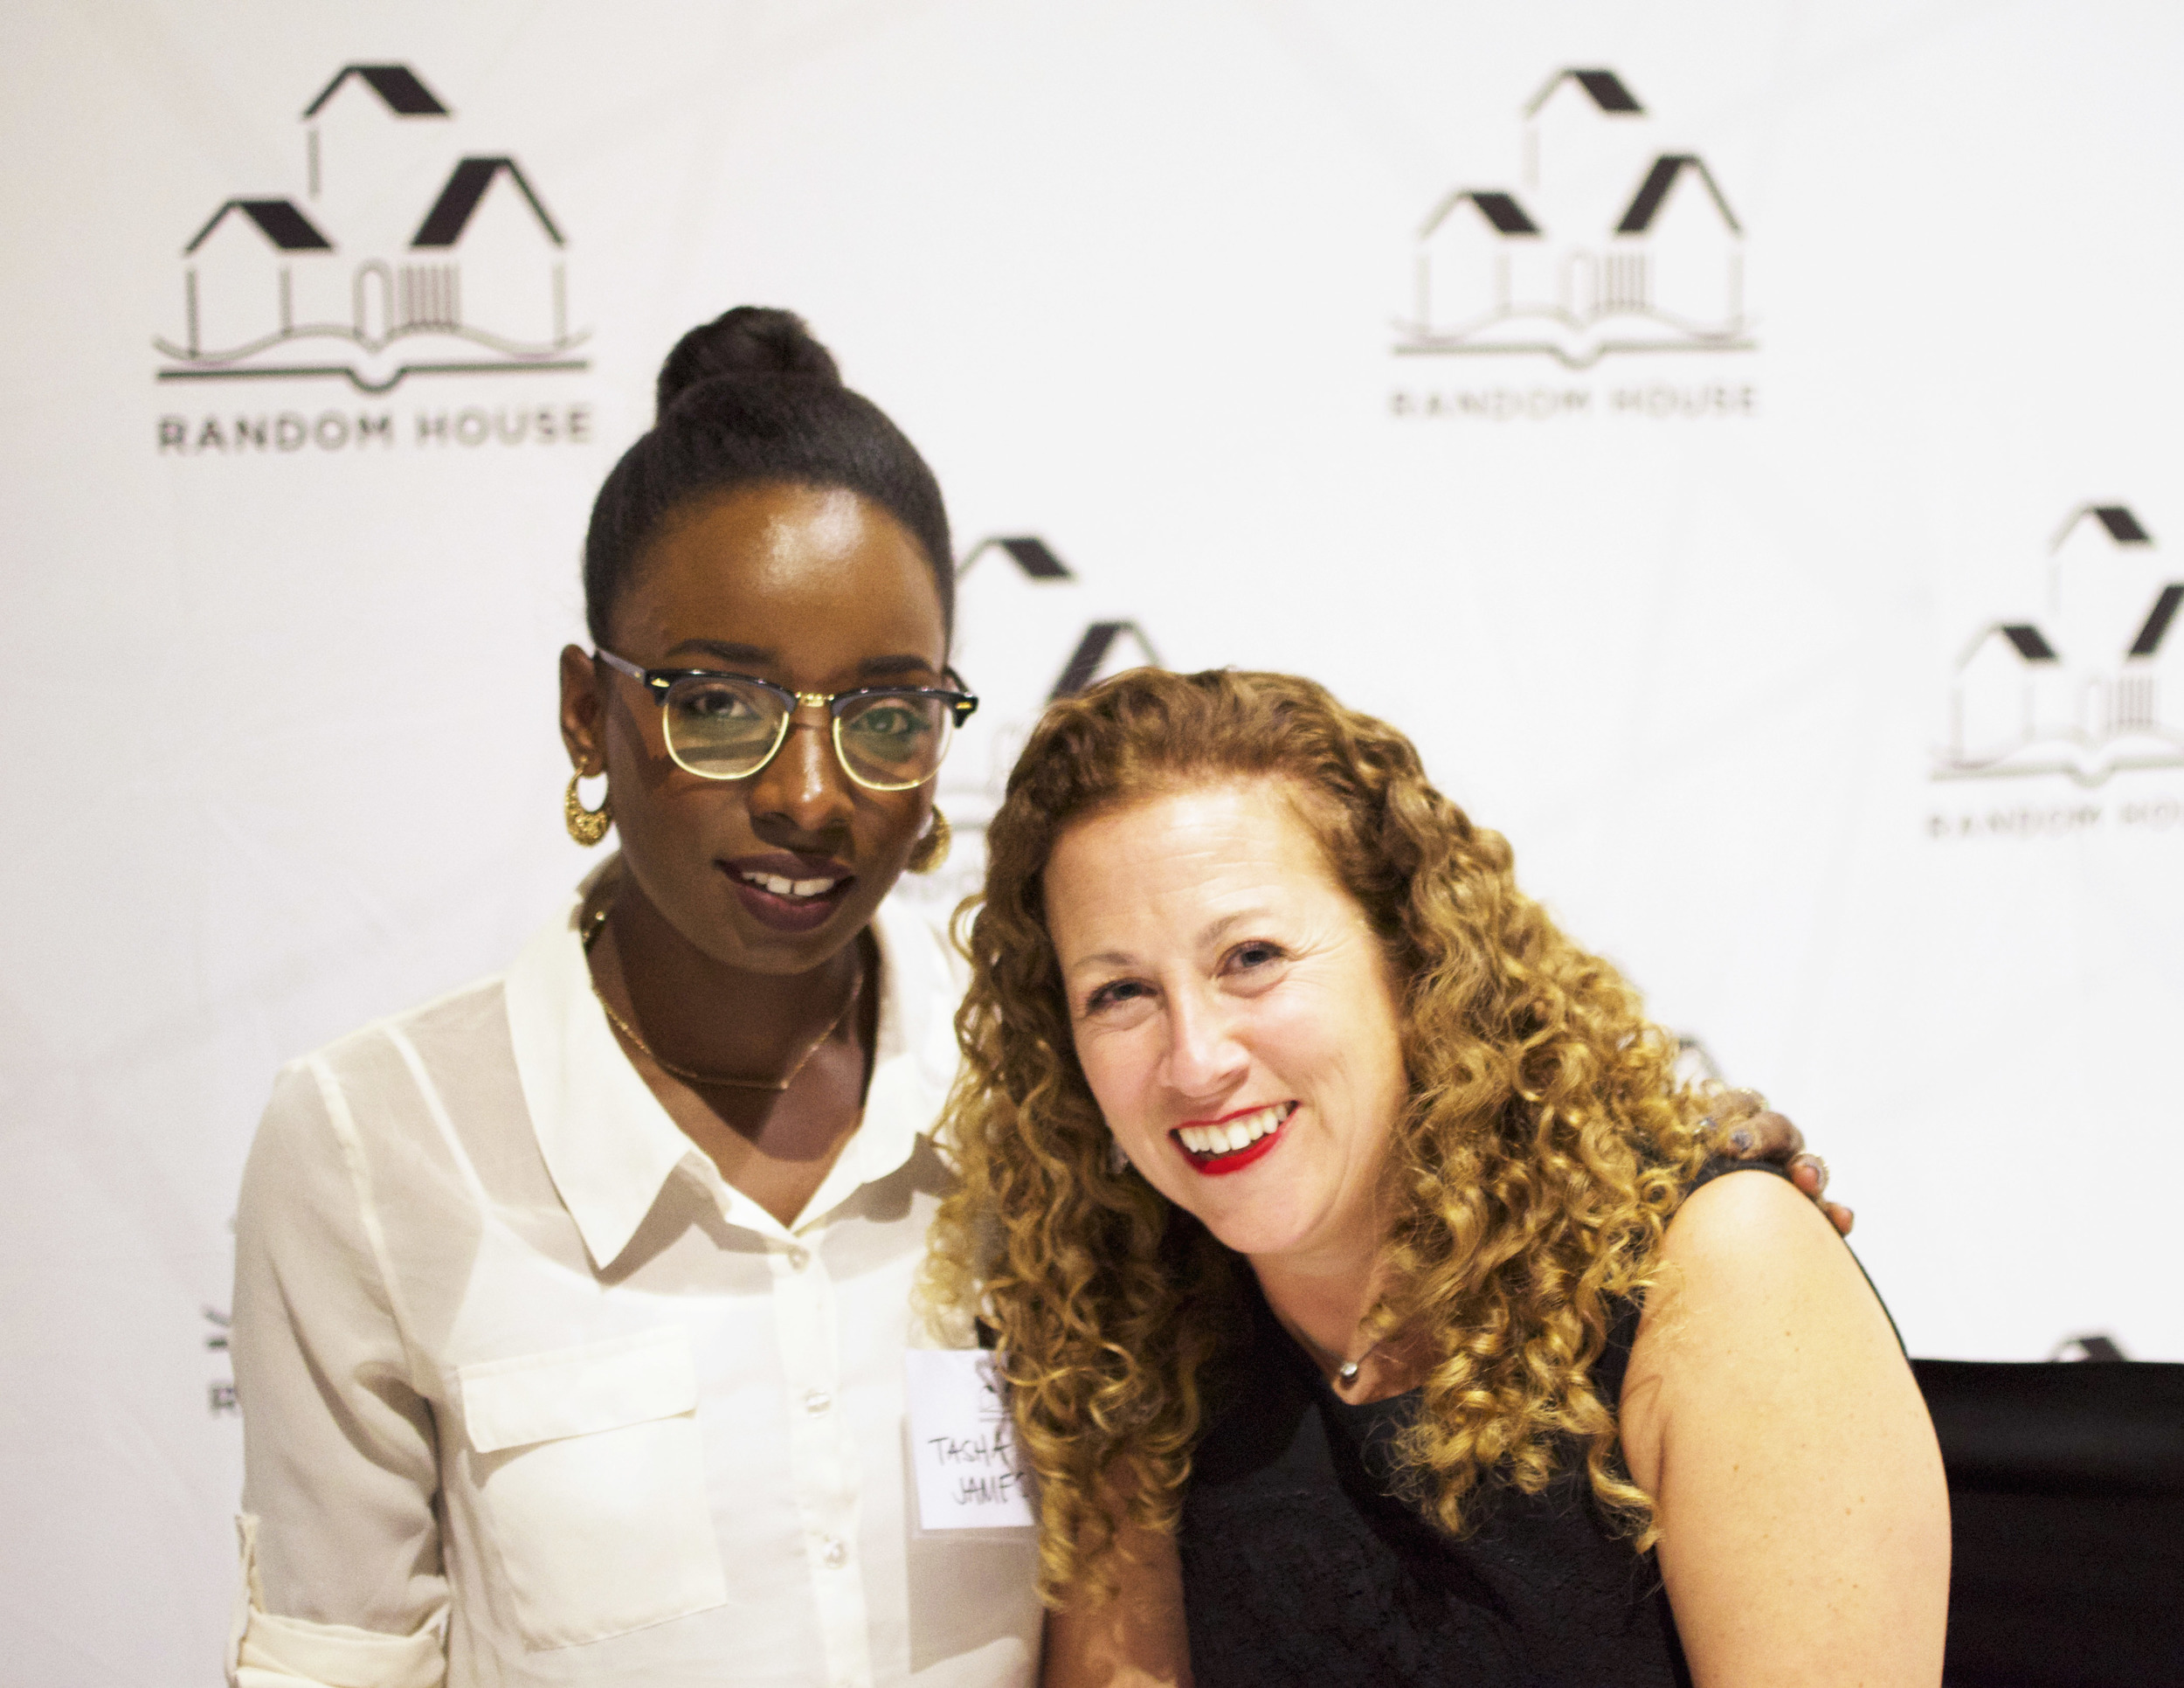 AnEveningWithJodiPicoult21